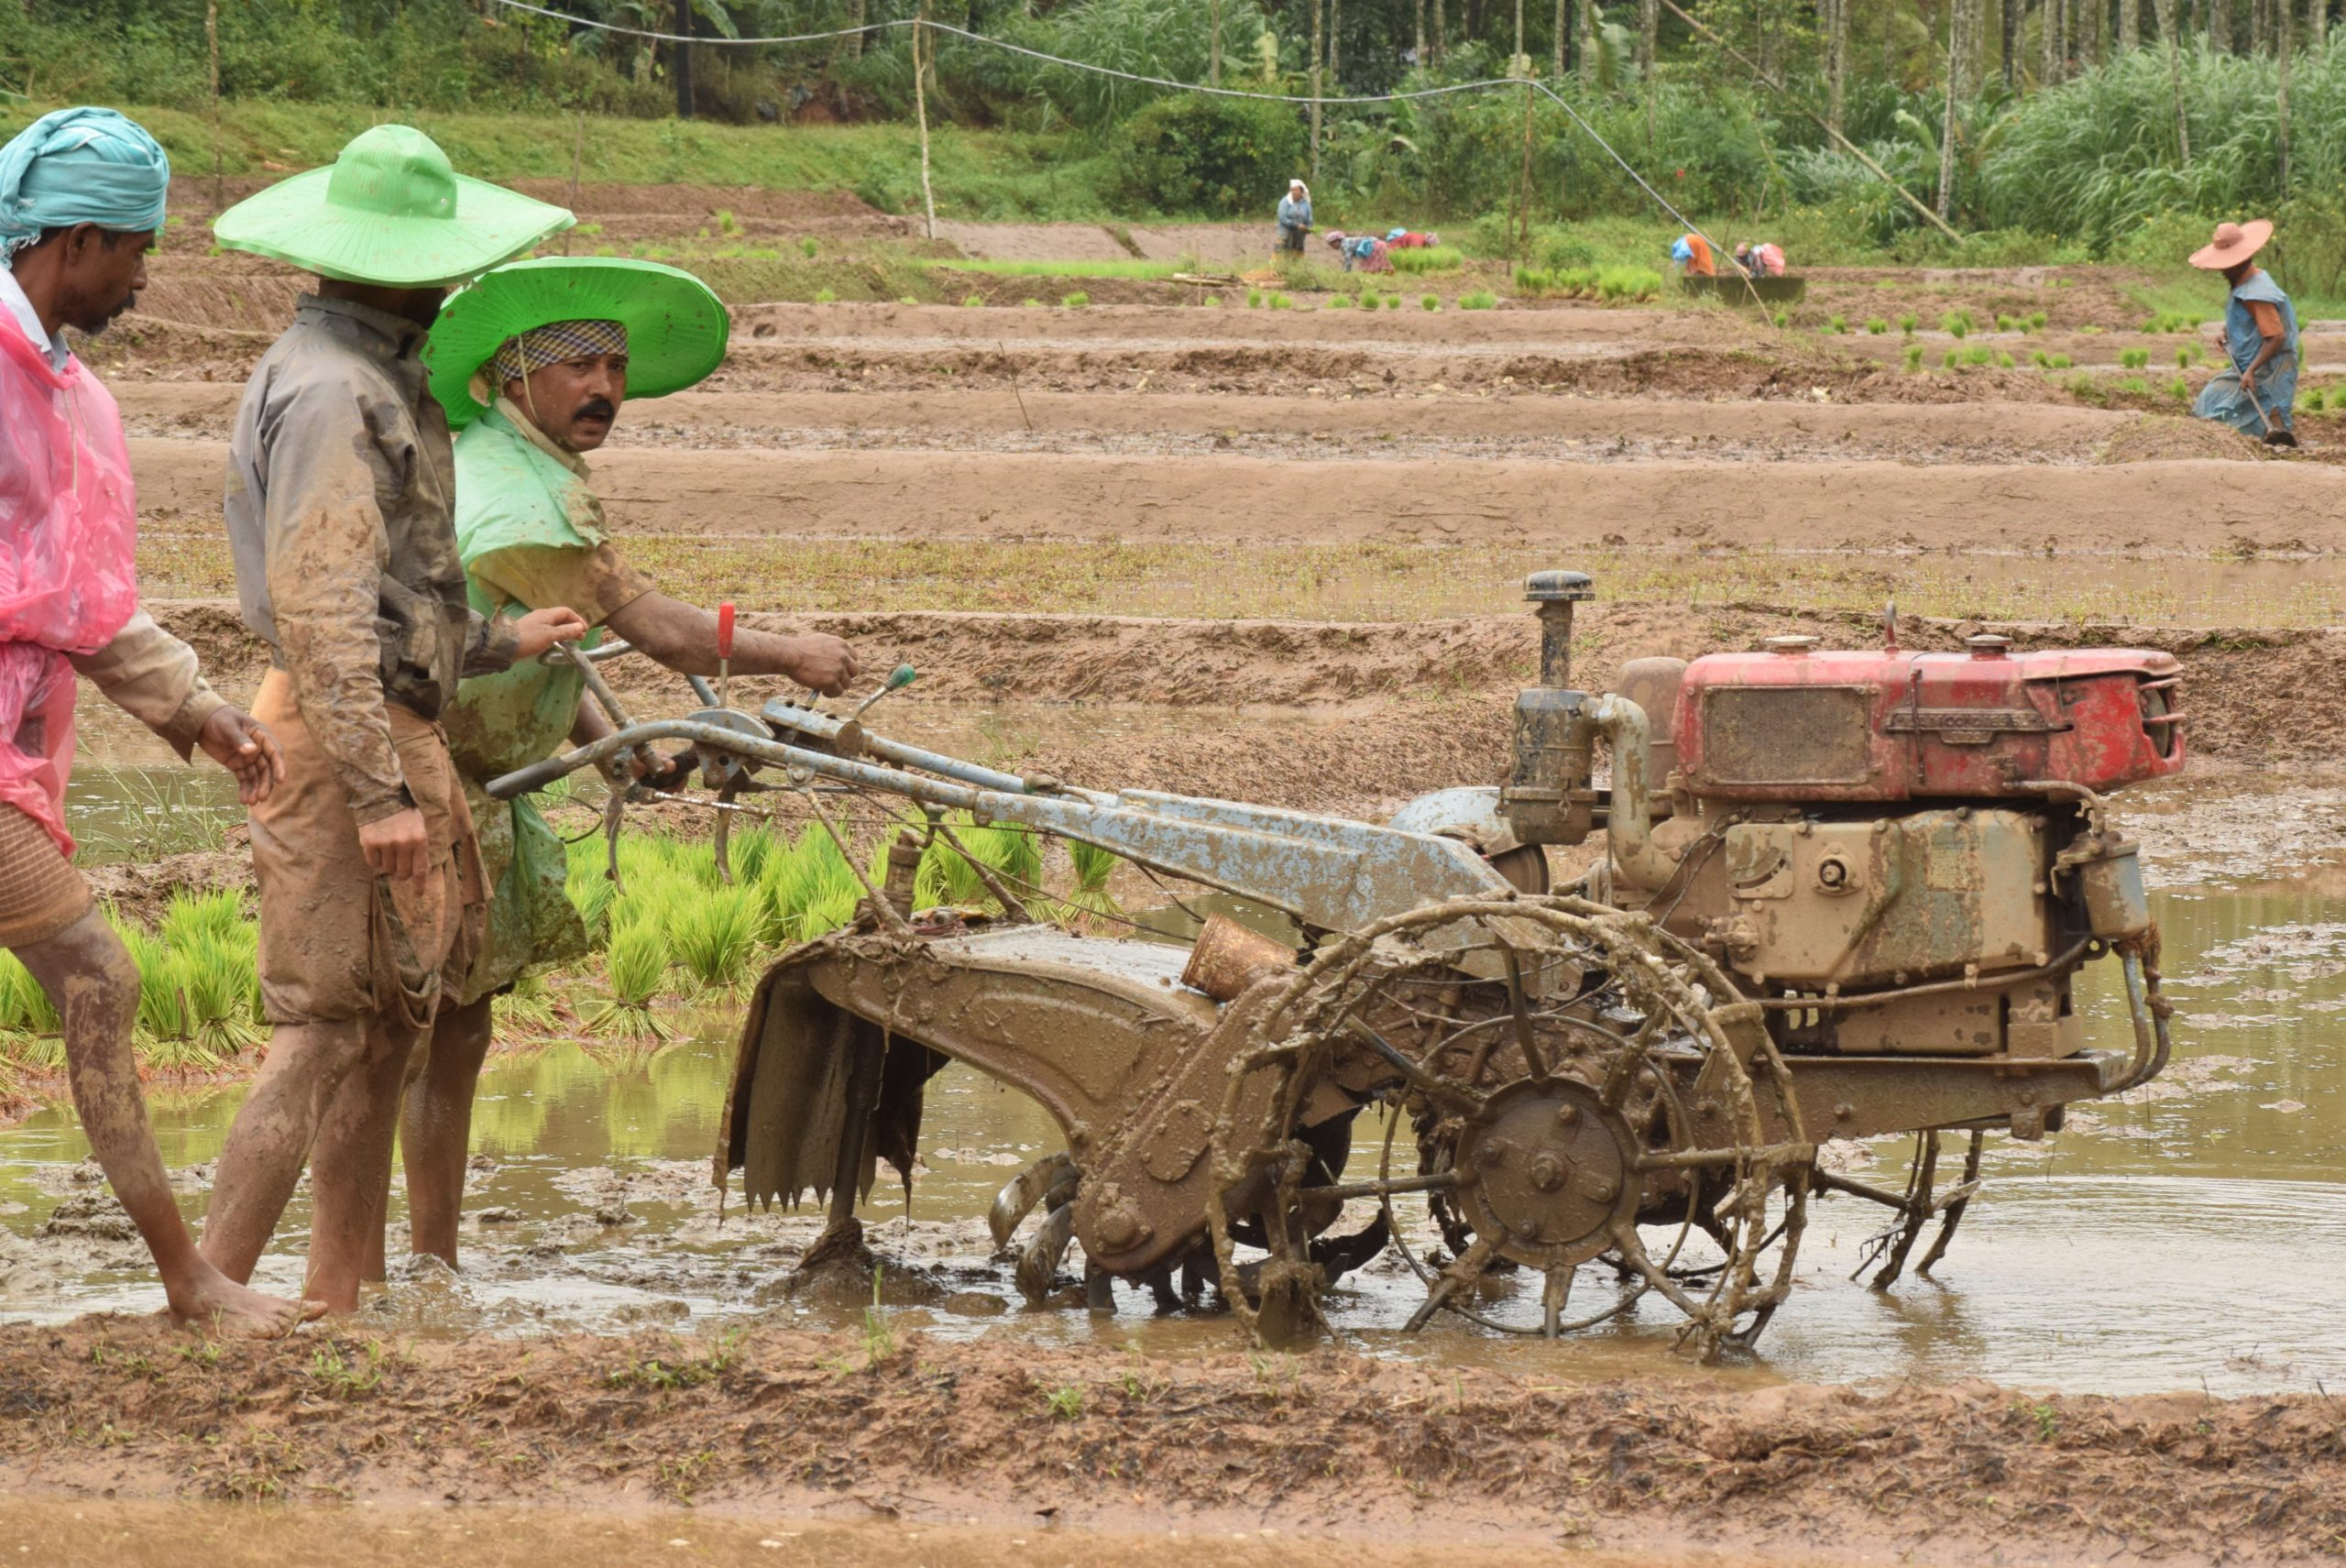 Farmers ploughing with a machine